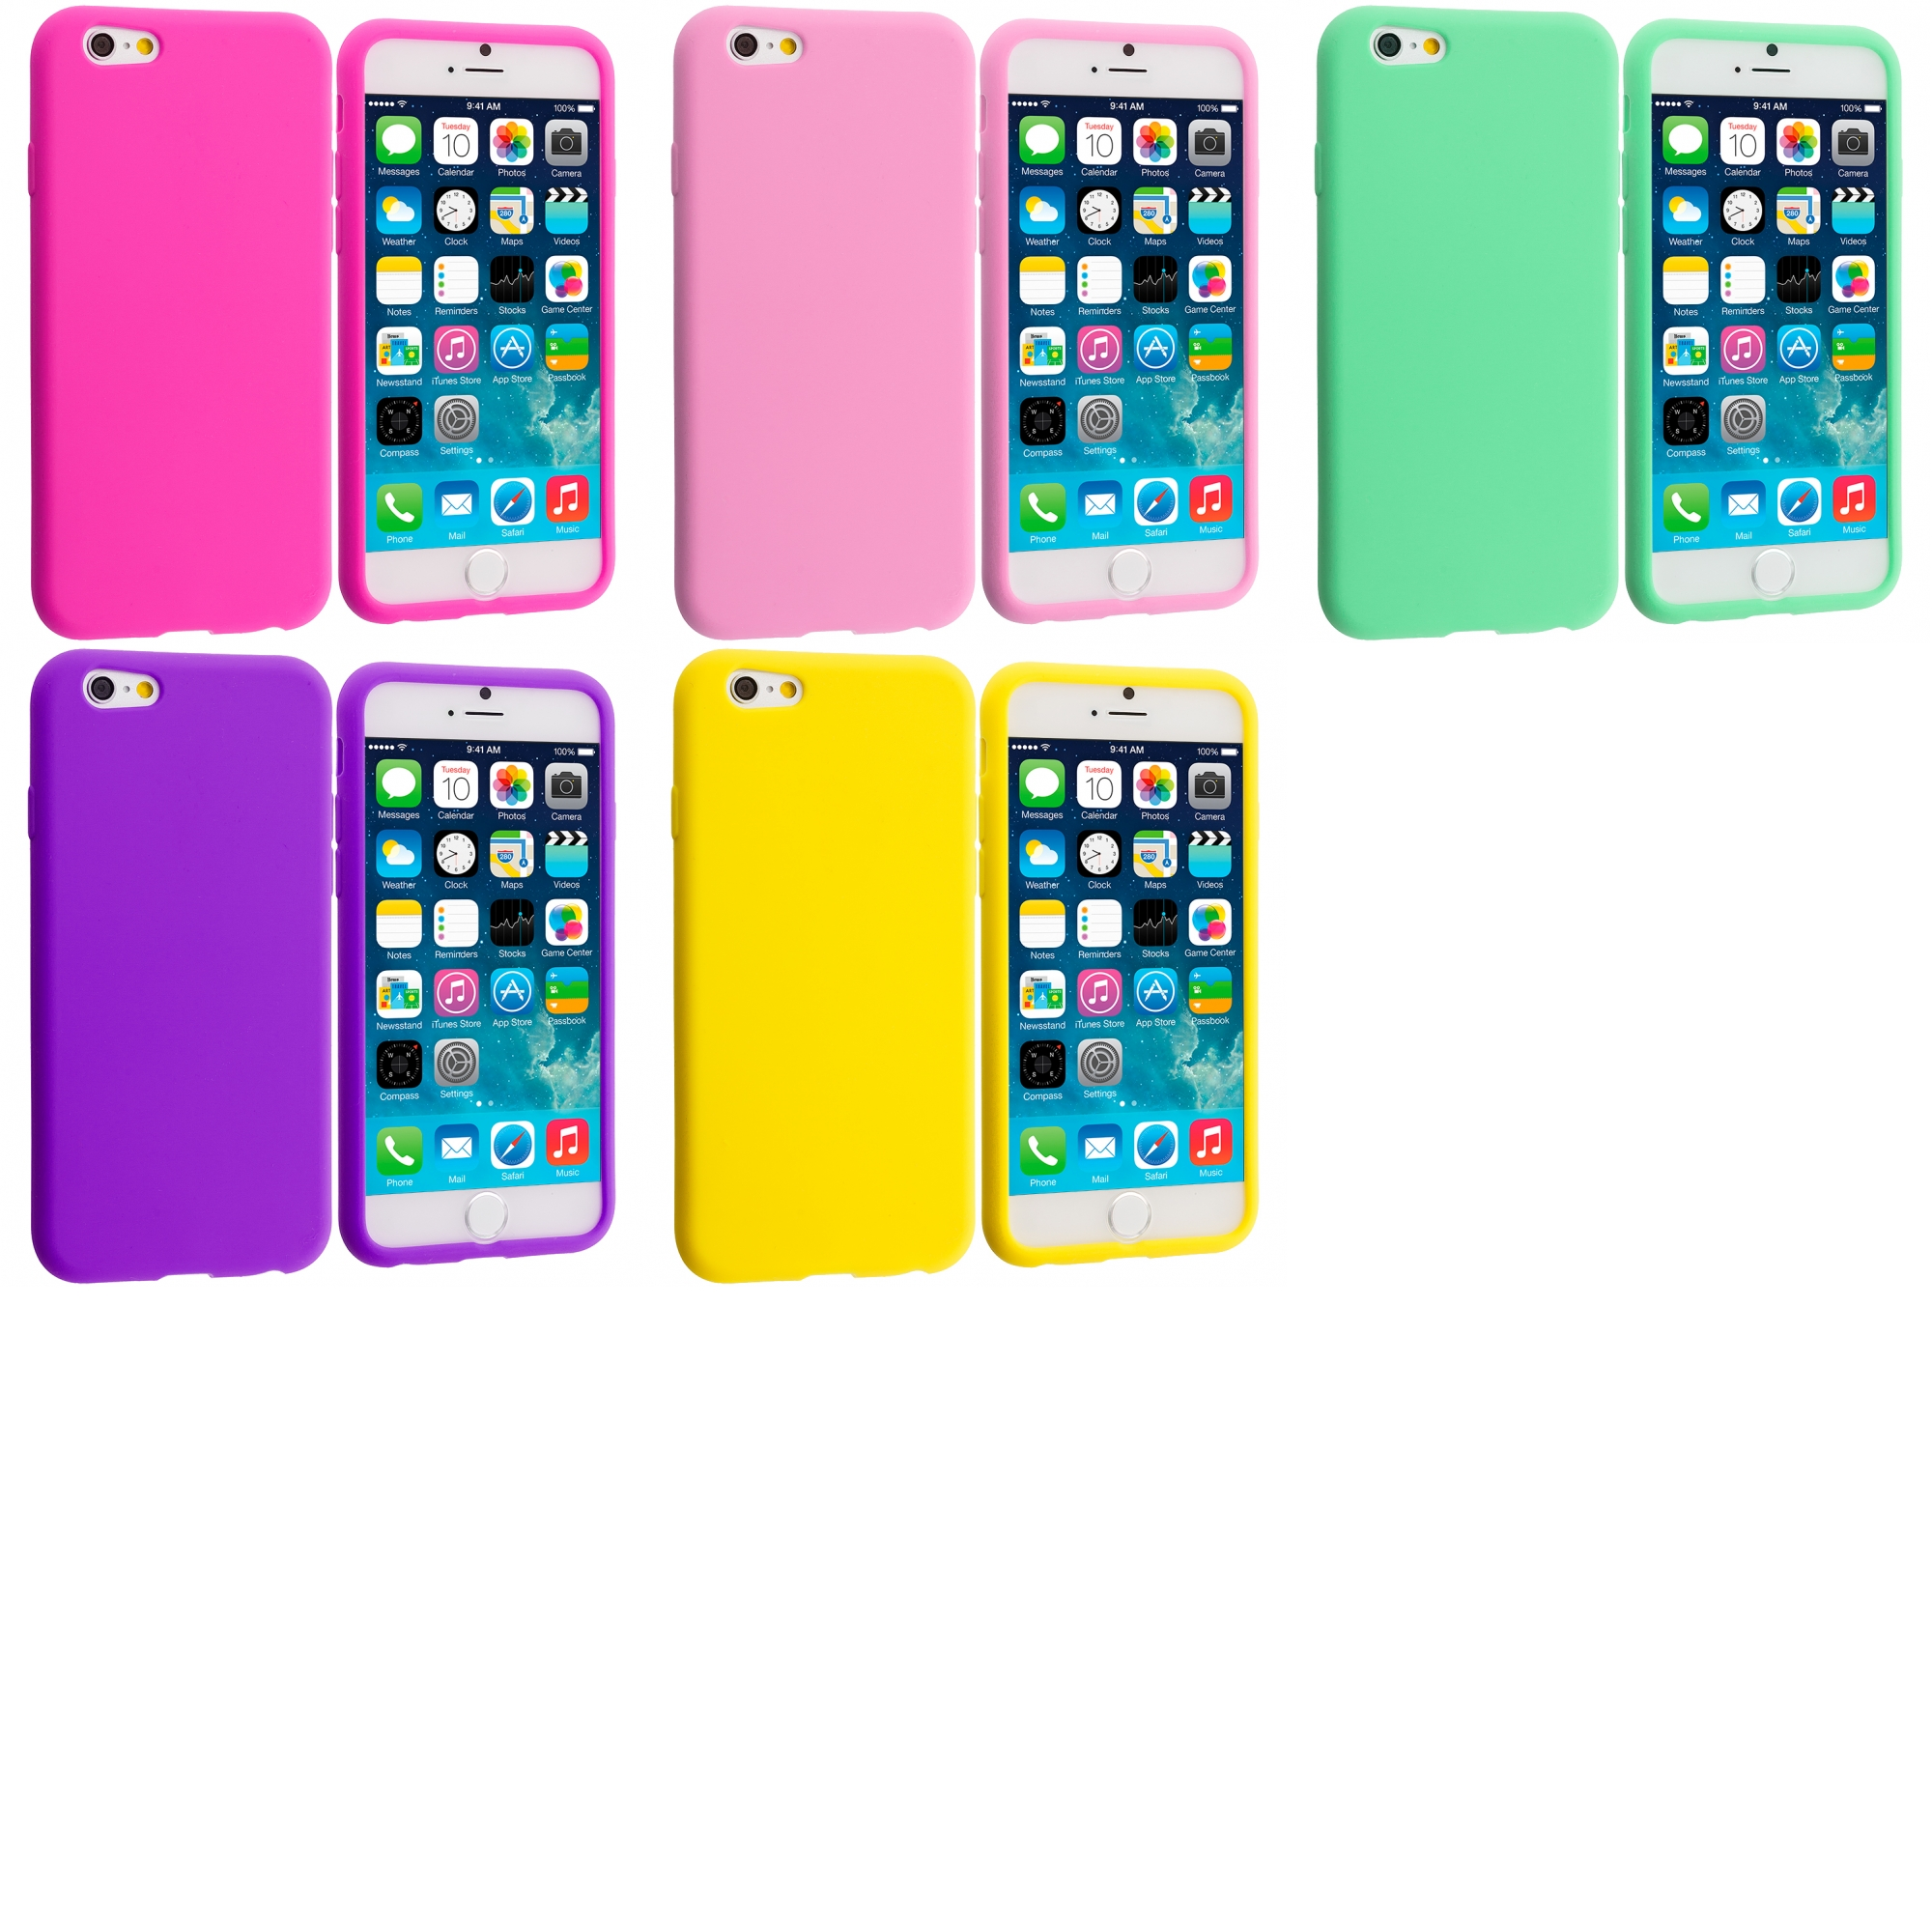 Apple iPhone 6 5 in 1 Bundle - Silicone Soft Skin Case Cover